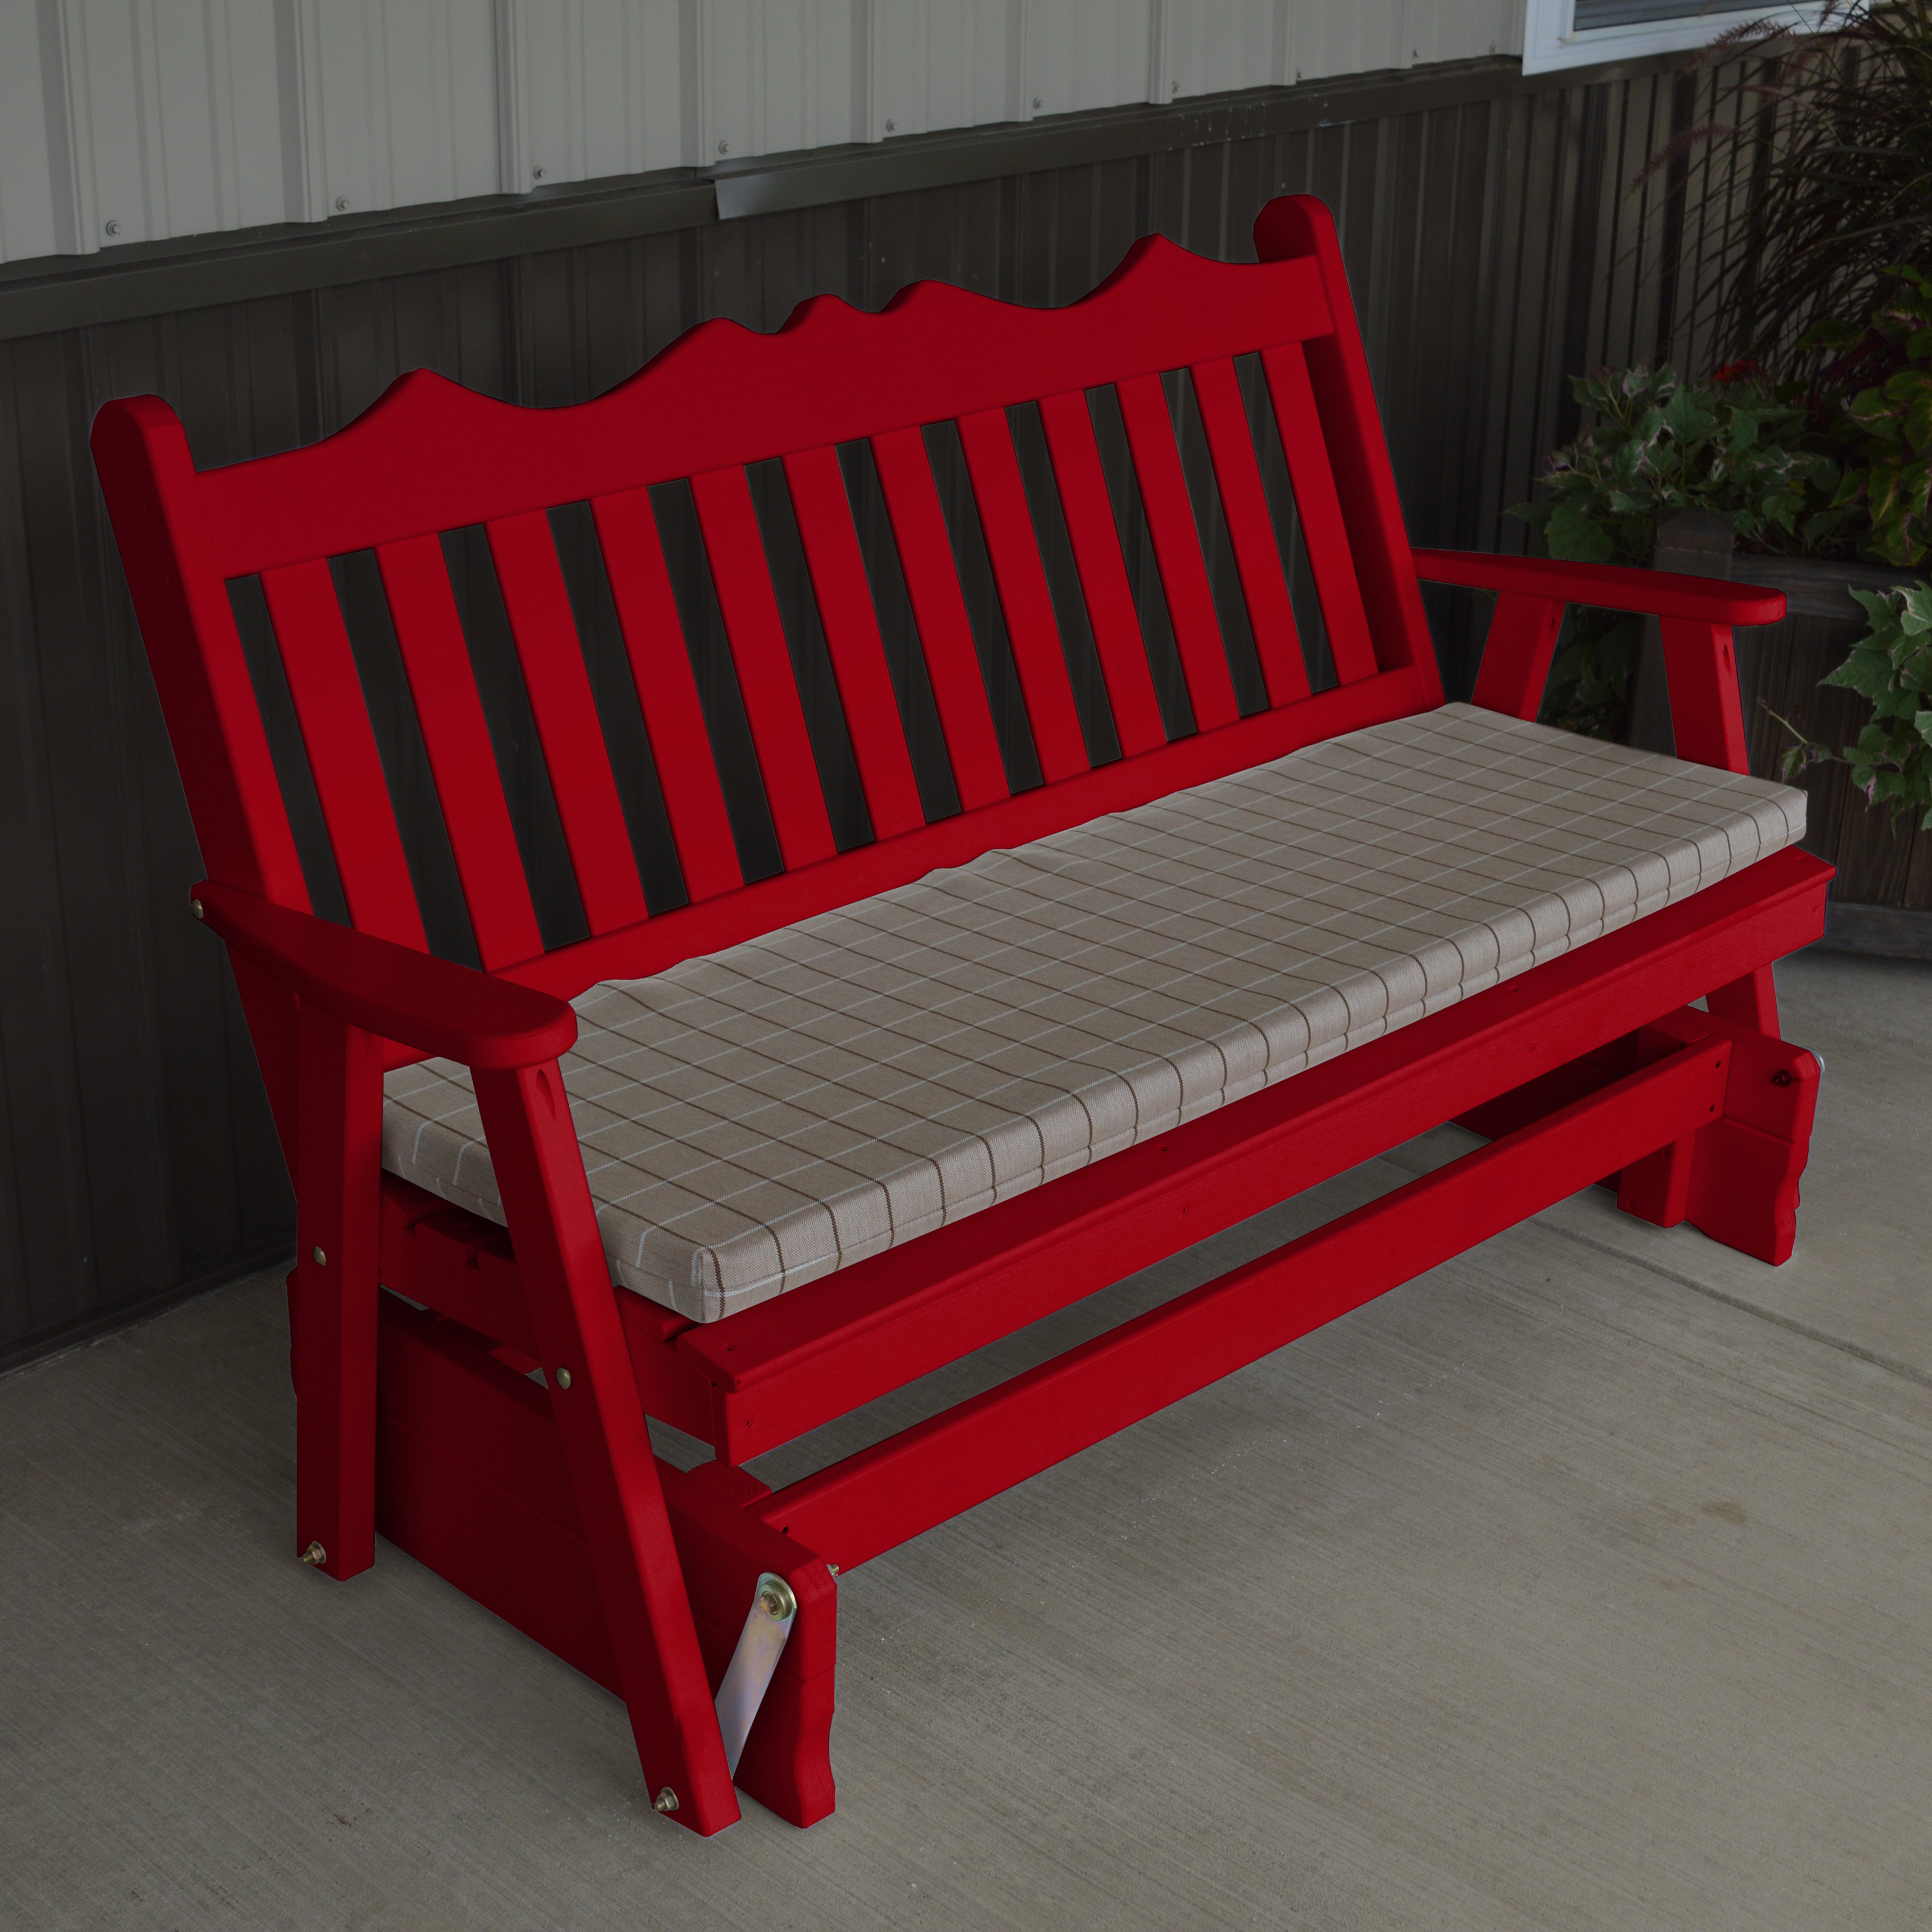 A U0026amp; L Furniture Yellow Pine Royal English Deluxe Outdoor Bench Glider    Walmart.com